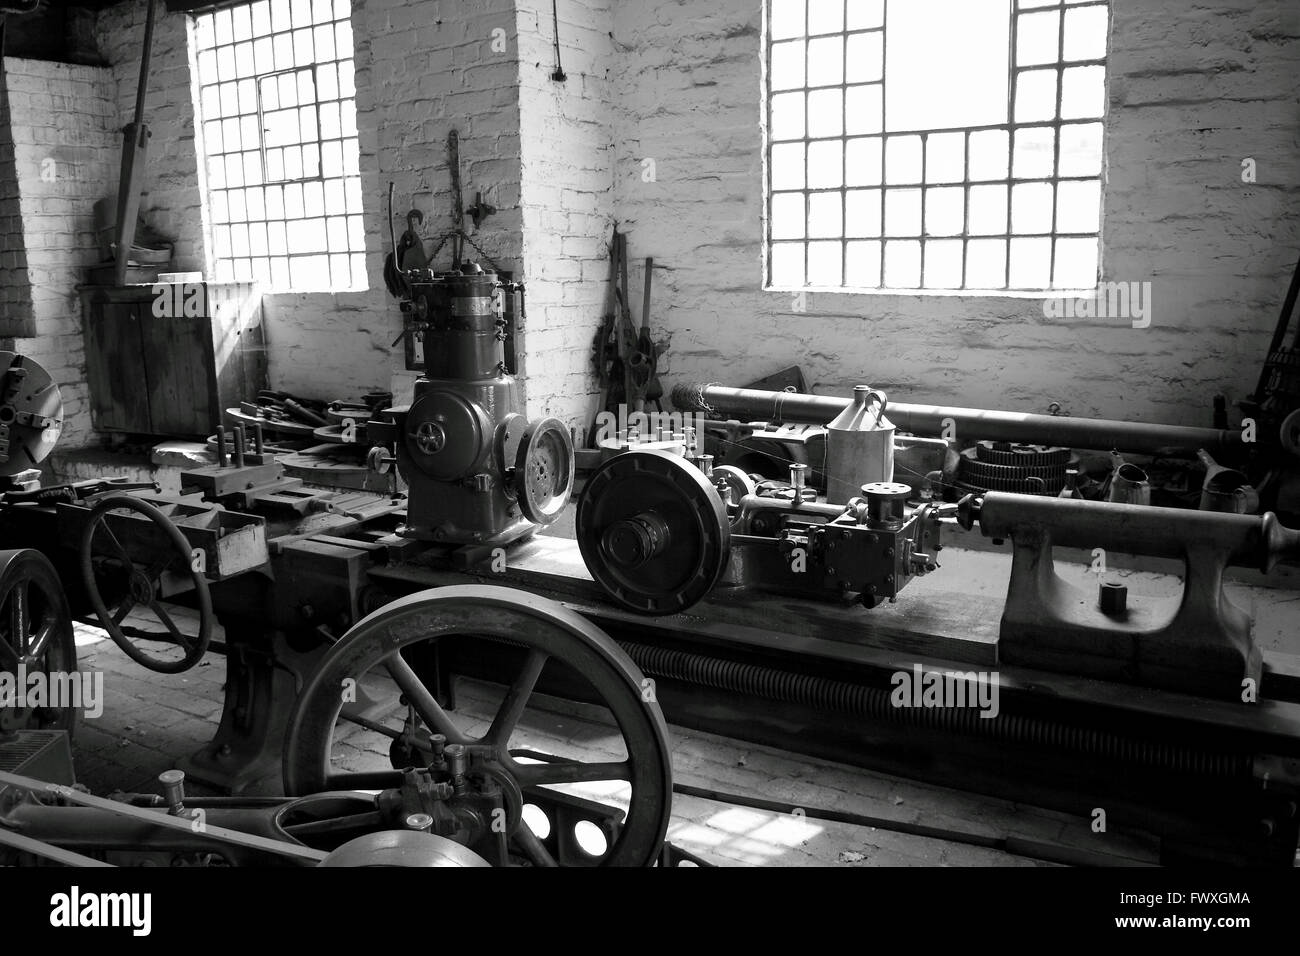 Factory workshop old machinery Stock Photo: 102002106 - Alamy